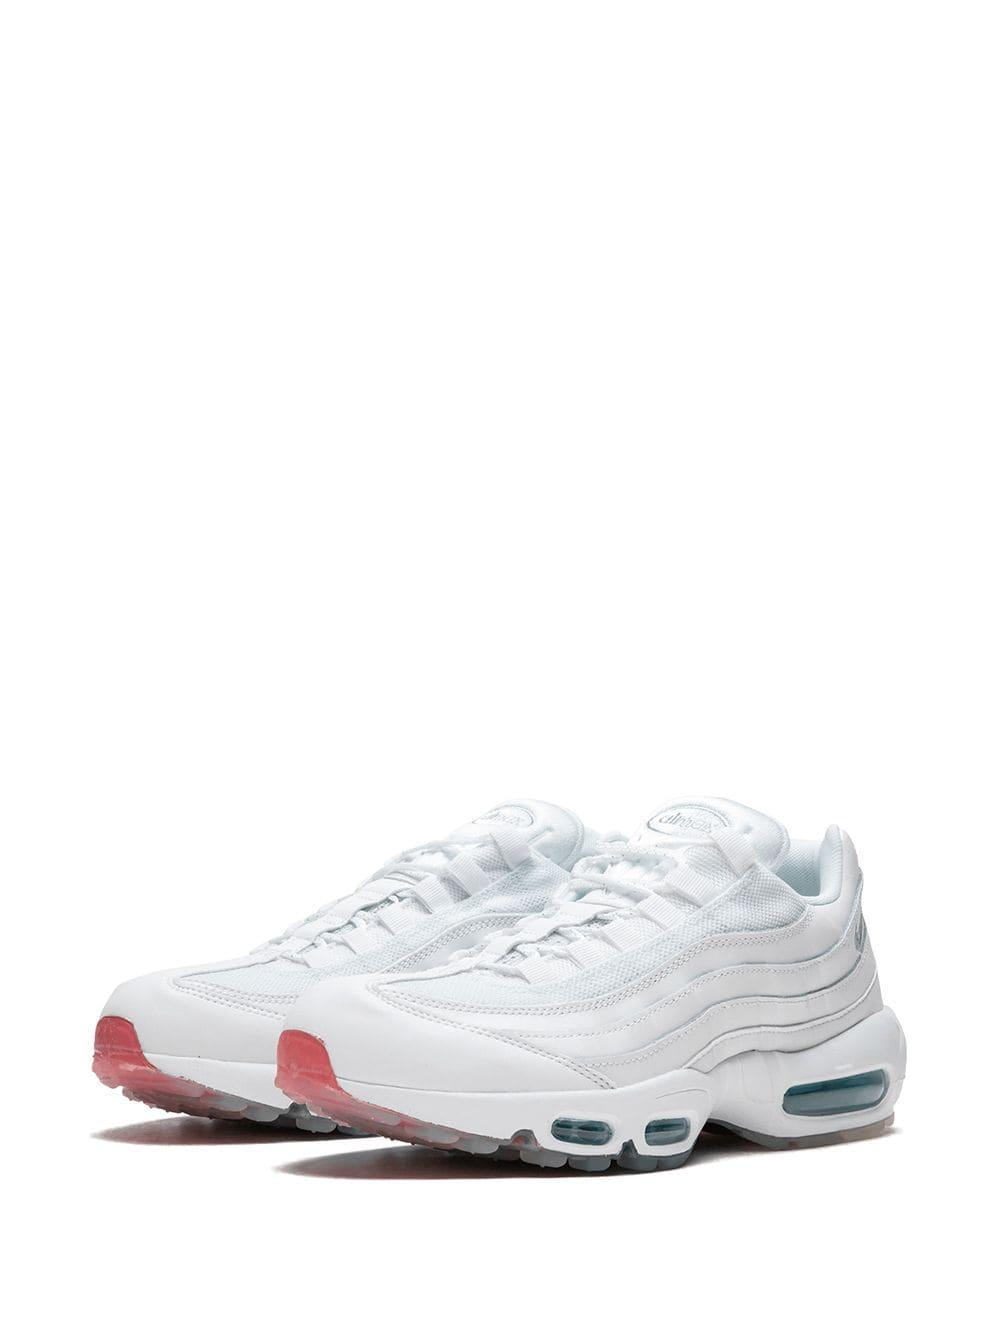 c24fe7922f Nike Air Max 95 Low Top Sneakers in White for Men - Lyst